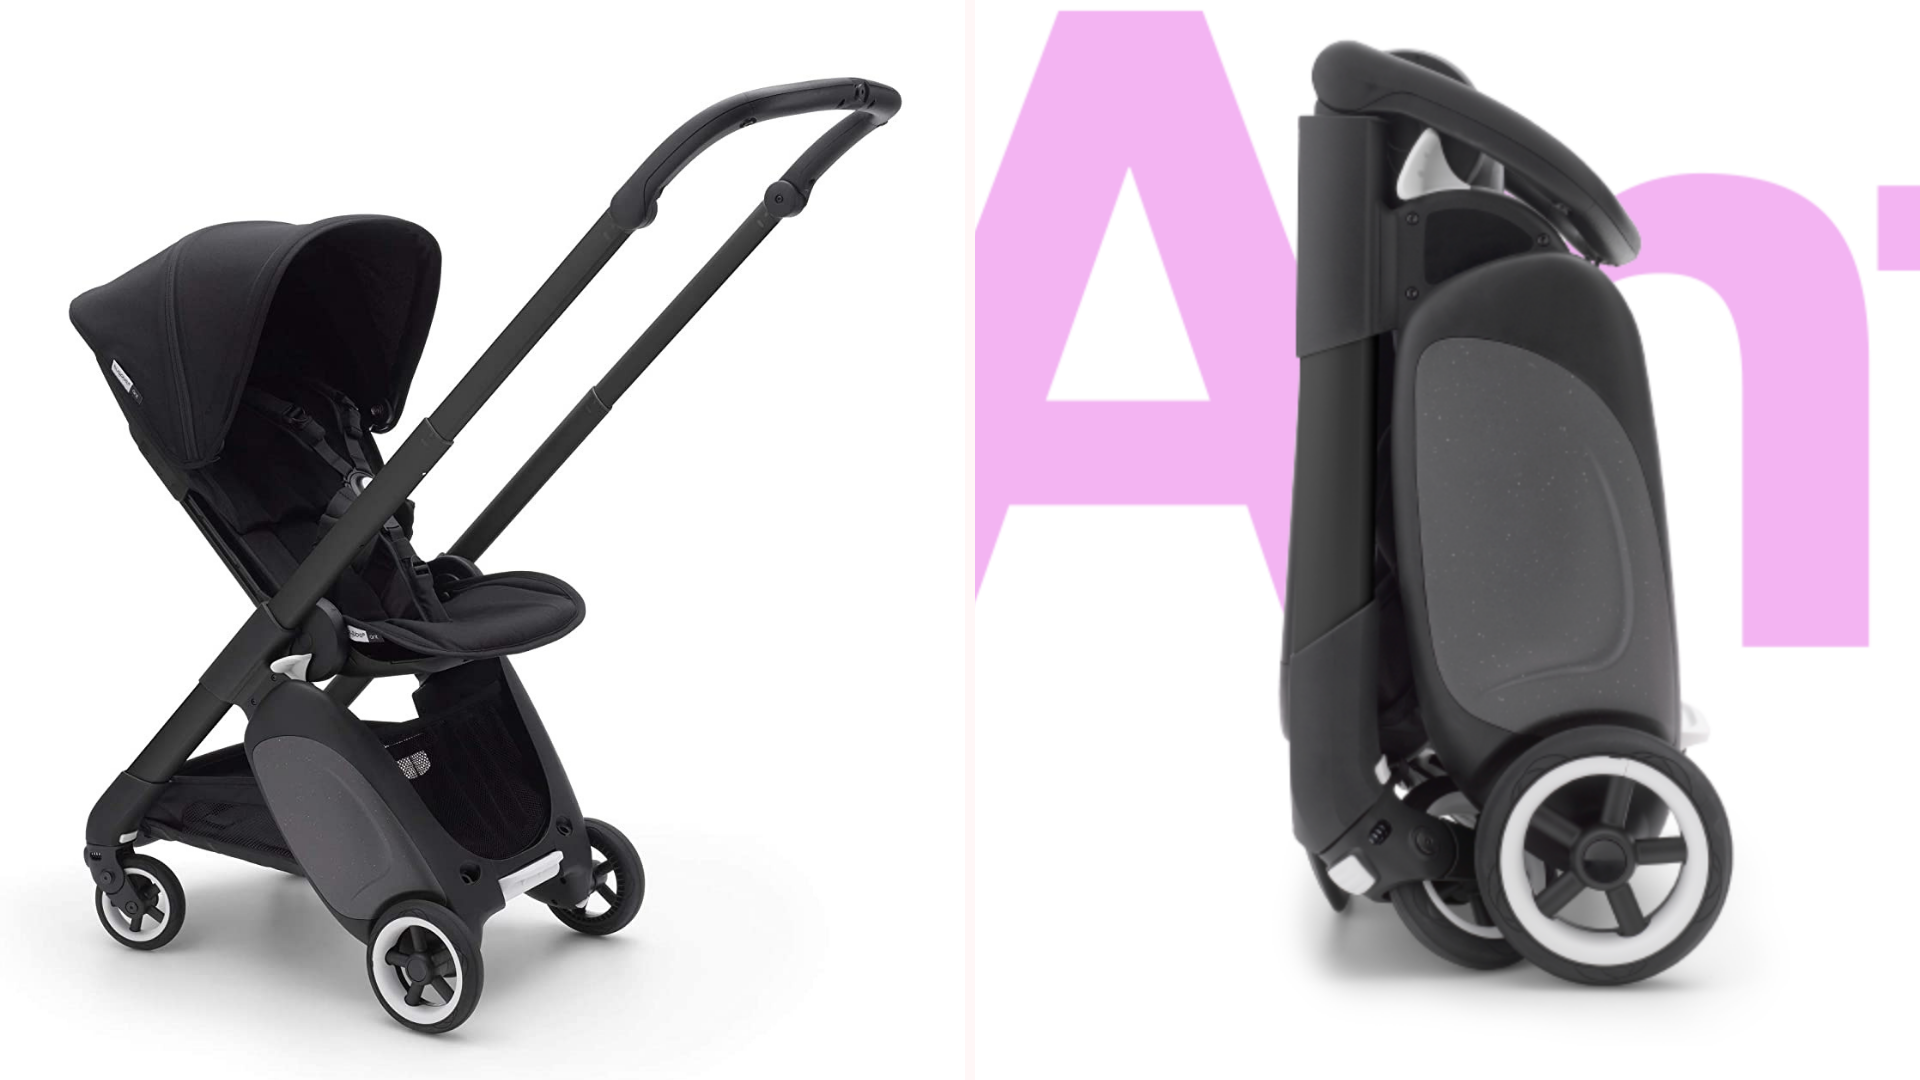 A Bugaboo Ant stroller in the open and closed positions.